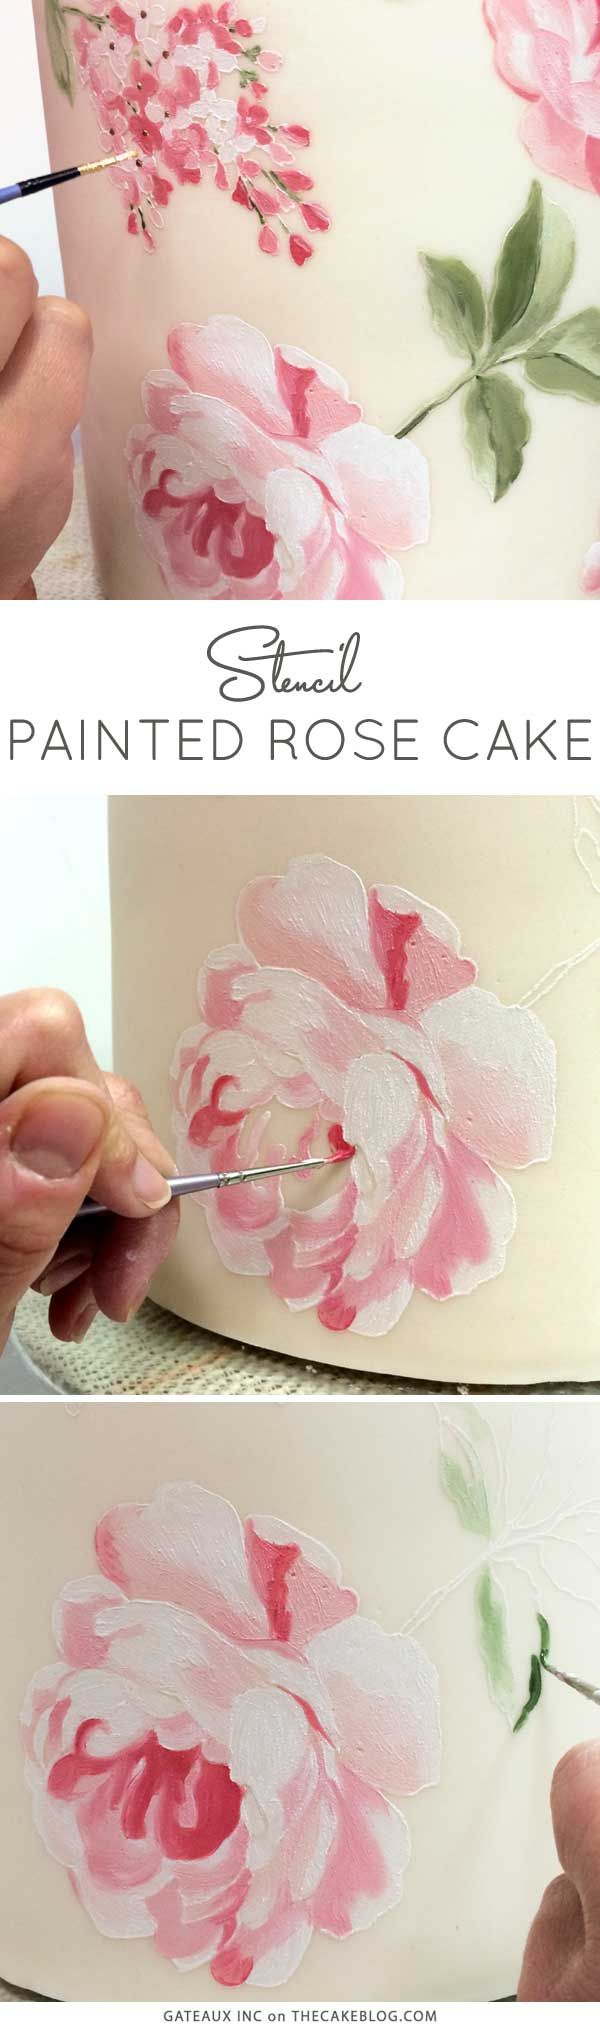 www.cakecoachonline.com - sharing...How to stencil-paint a cake | Learn how from Gateaux Inc on TheCakeBlog.com